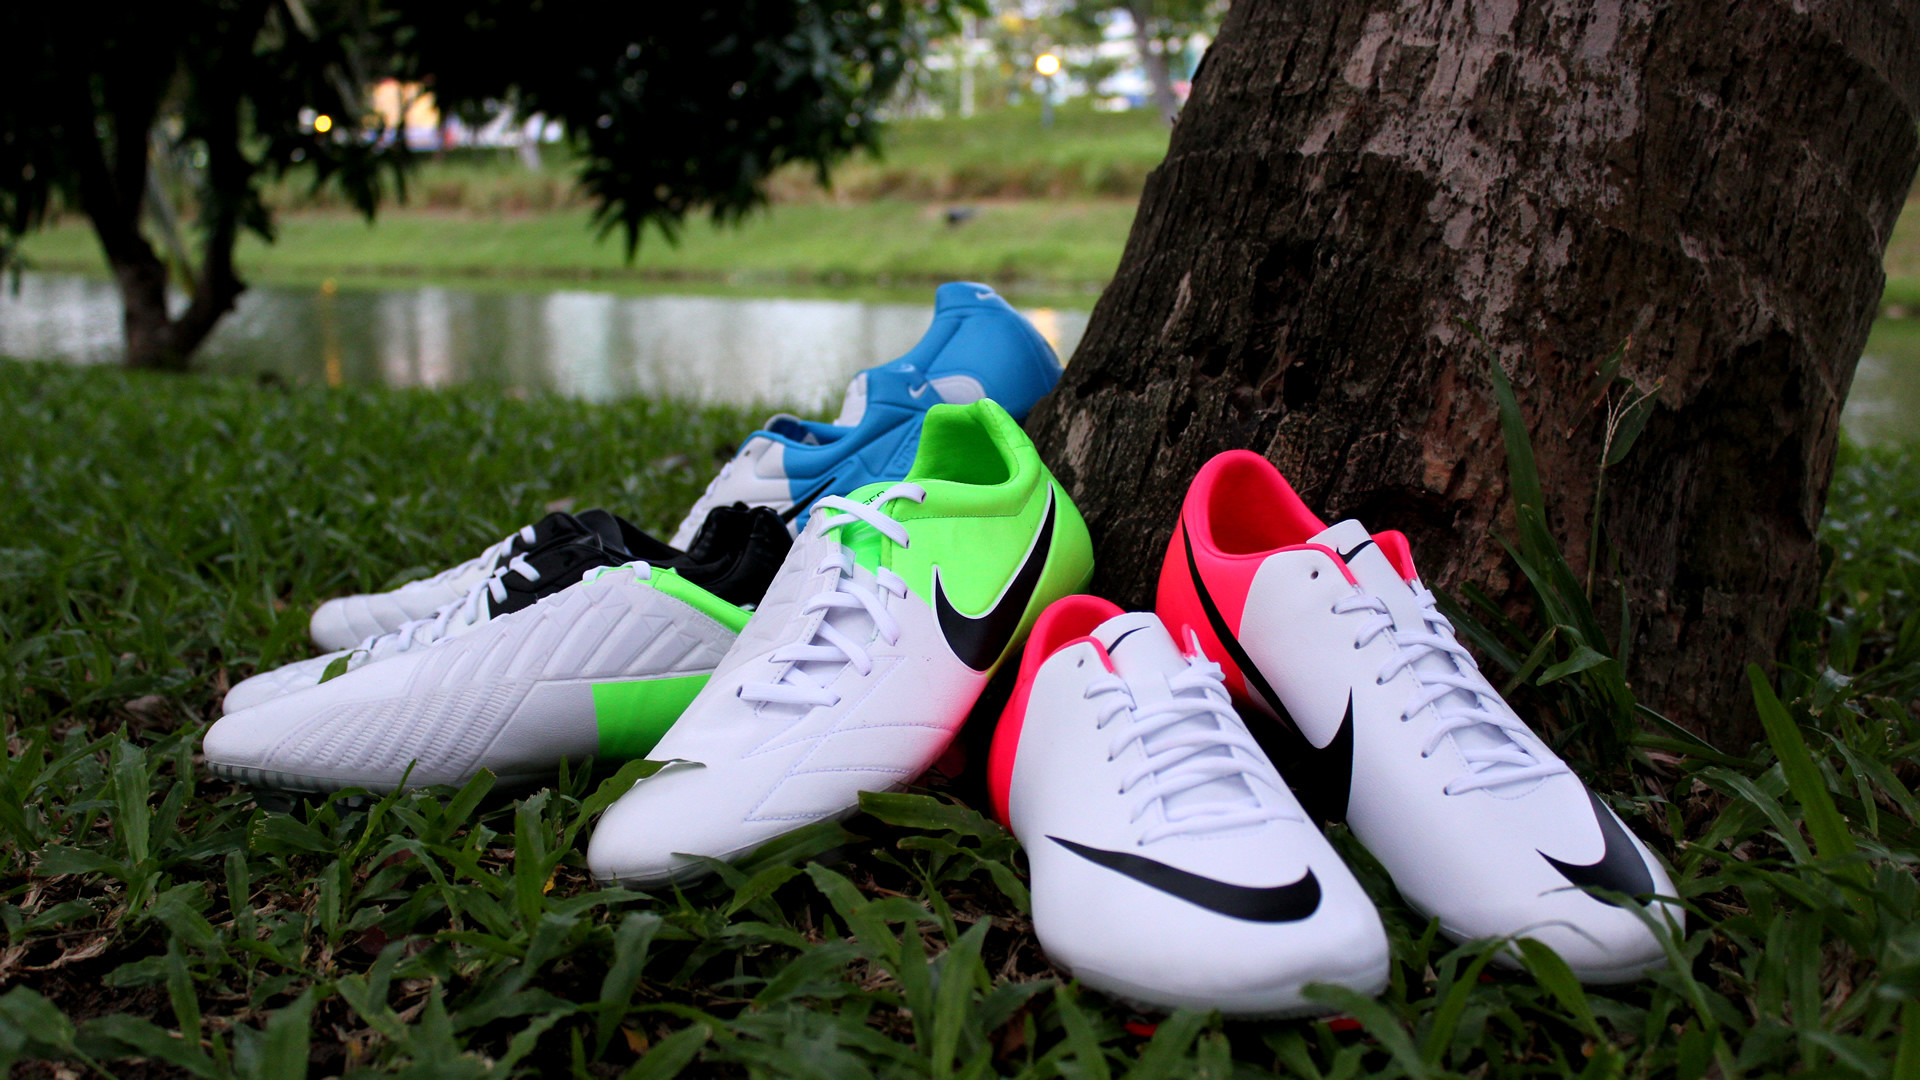 1920x1080 hd wallpaper the clash pin nike collection football